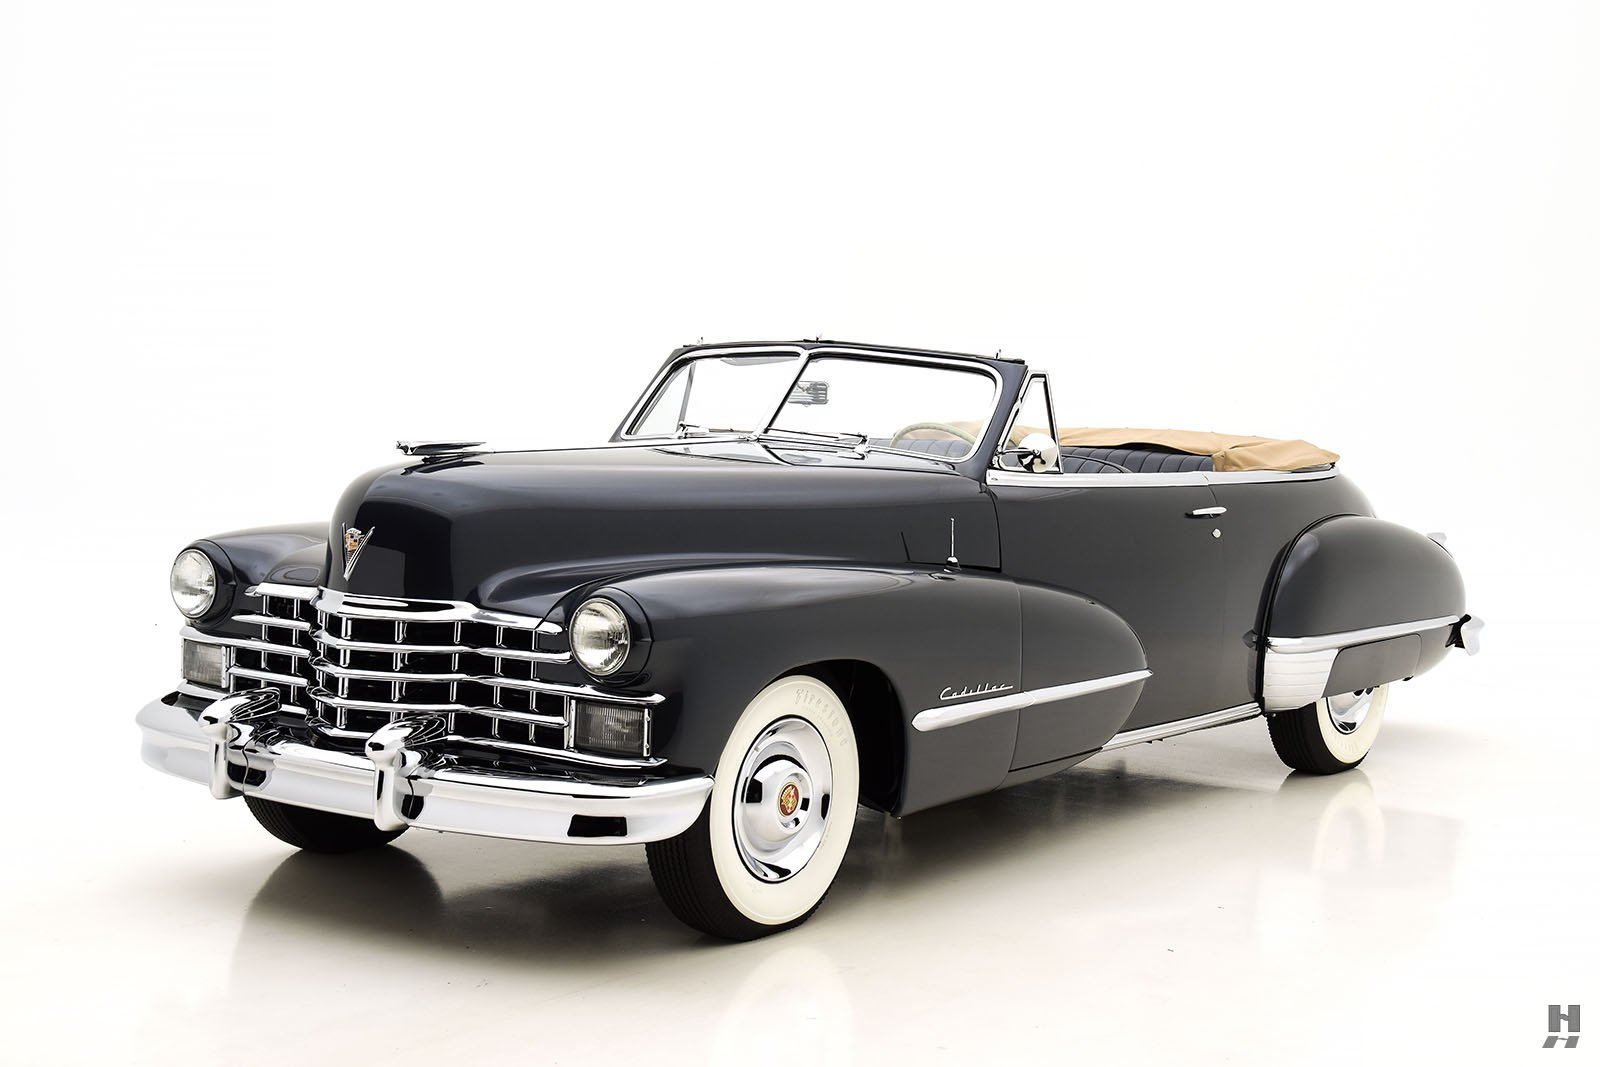 Classic Cadillac For Sale >> 1947 Cadillac Series 62 Convertible For Sale | Classic Car For Sale | Hyman, LTD